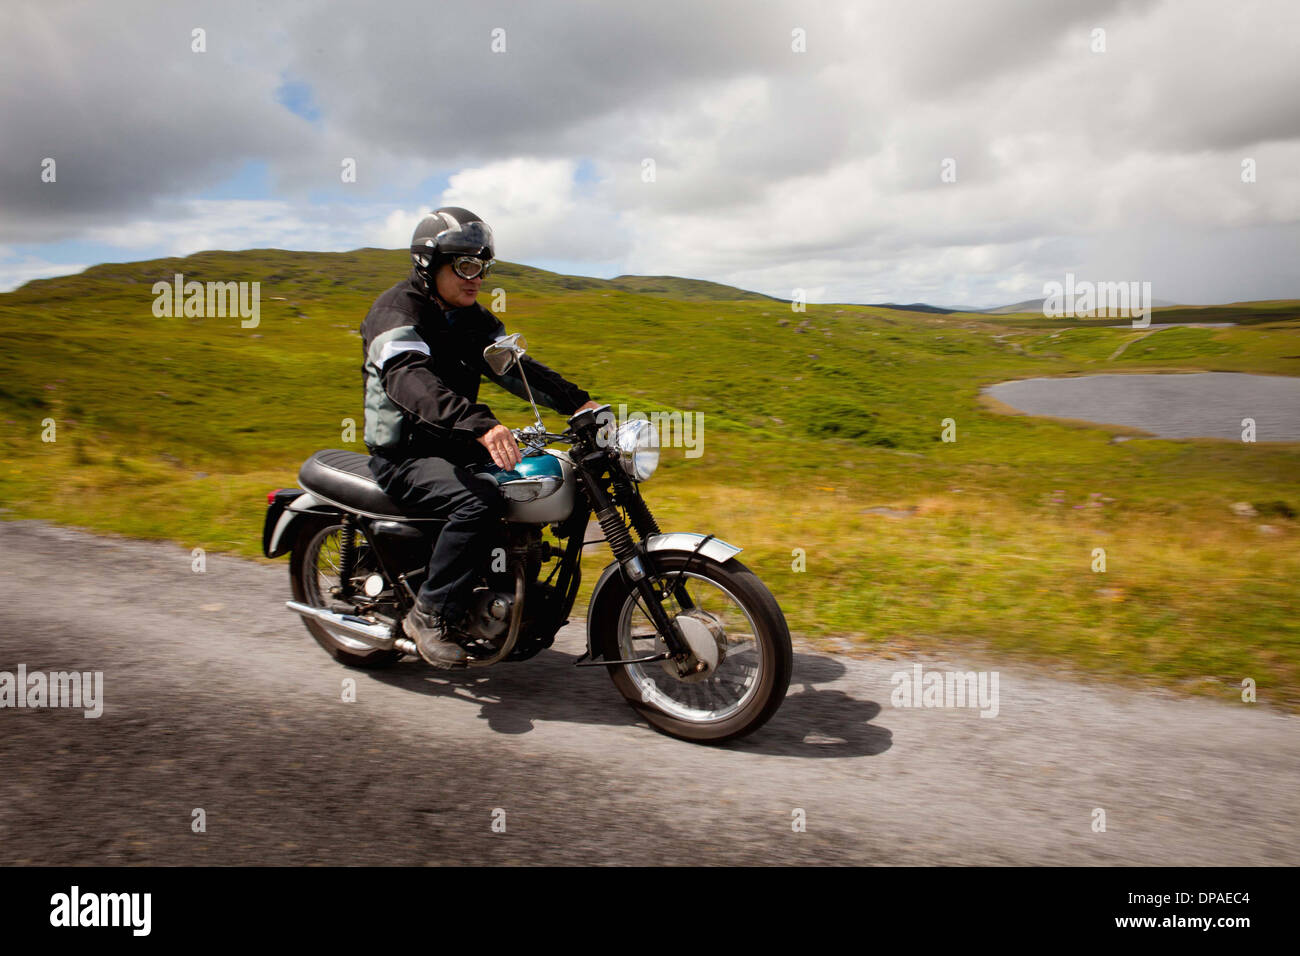 Senior male on motorbike on rural road - Stock Image